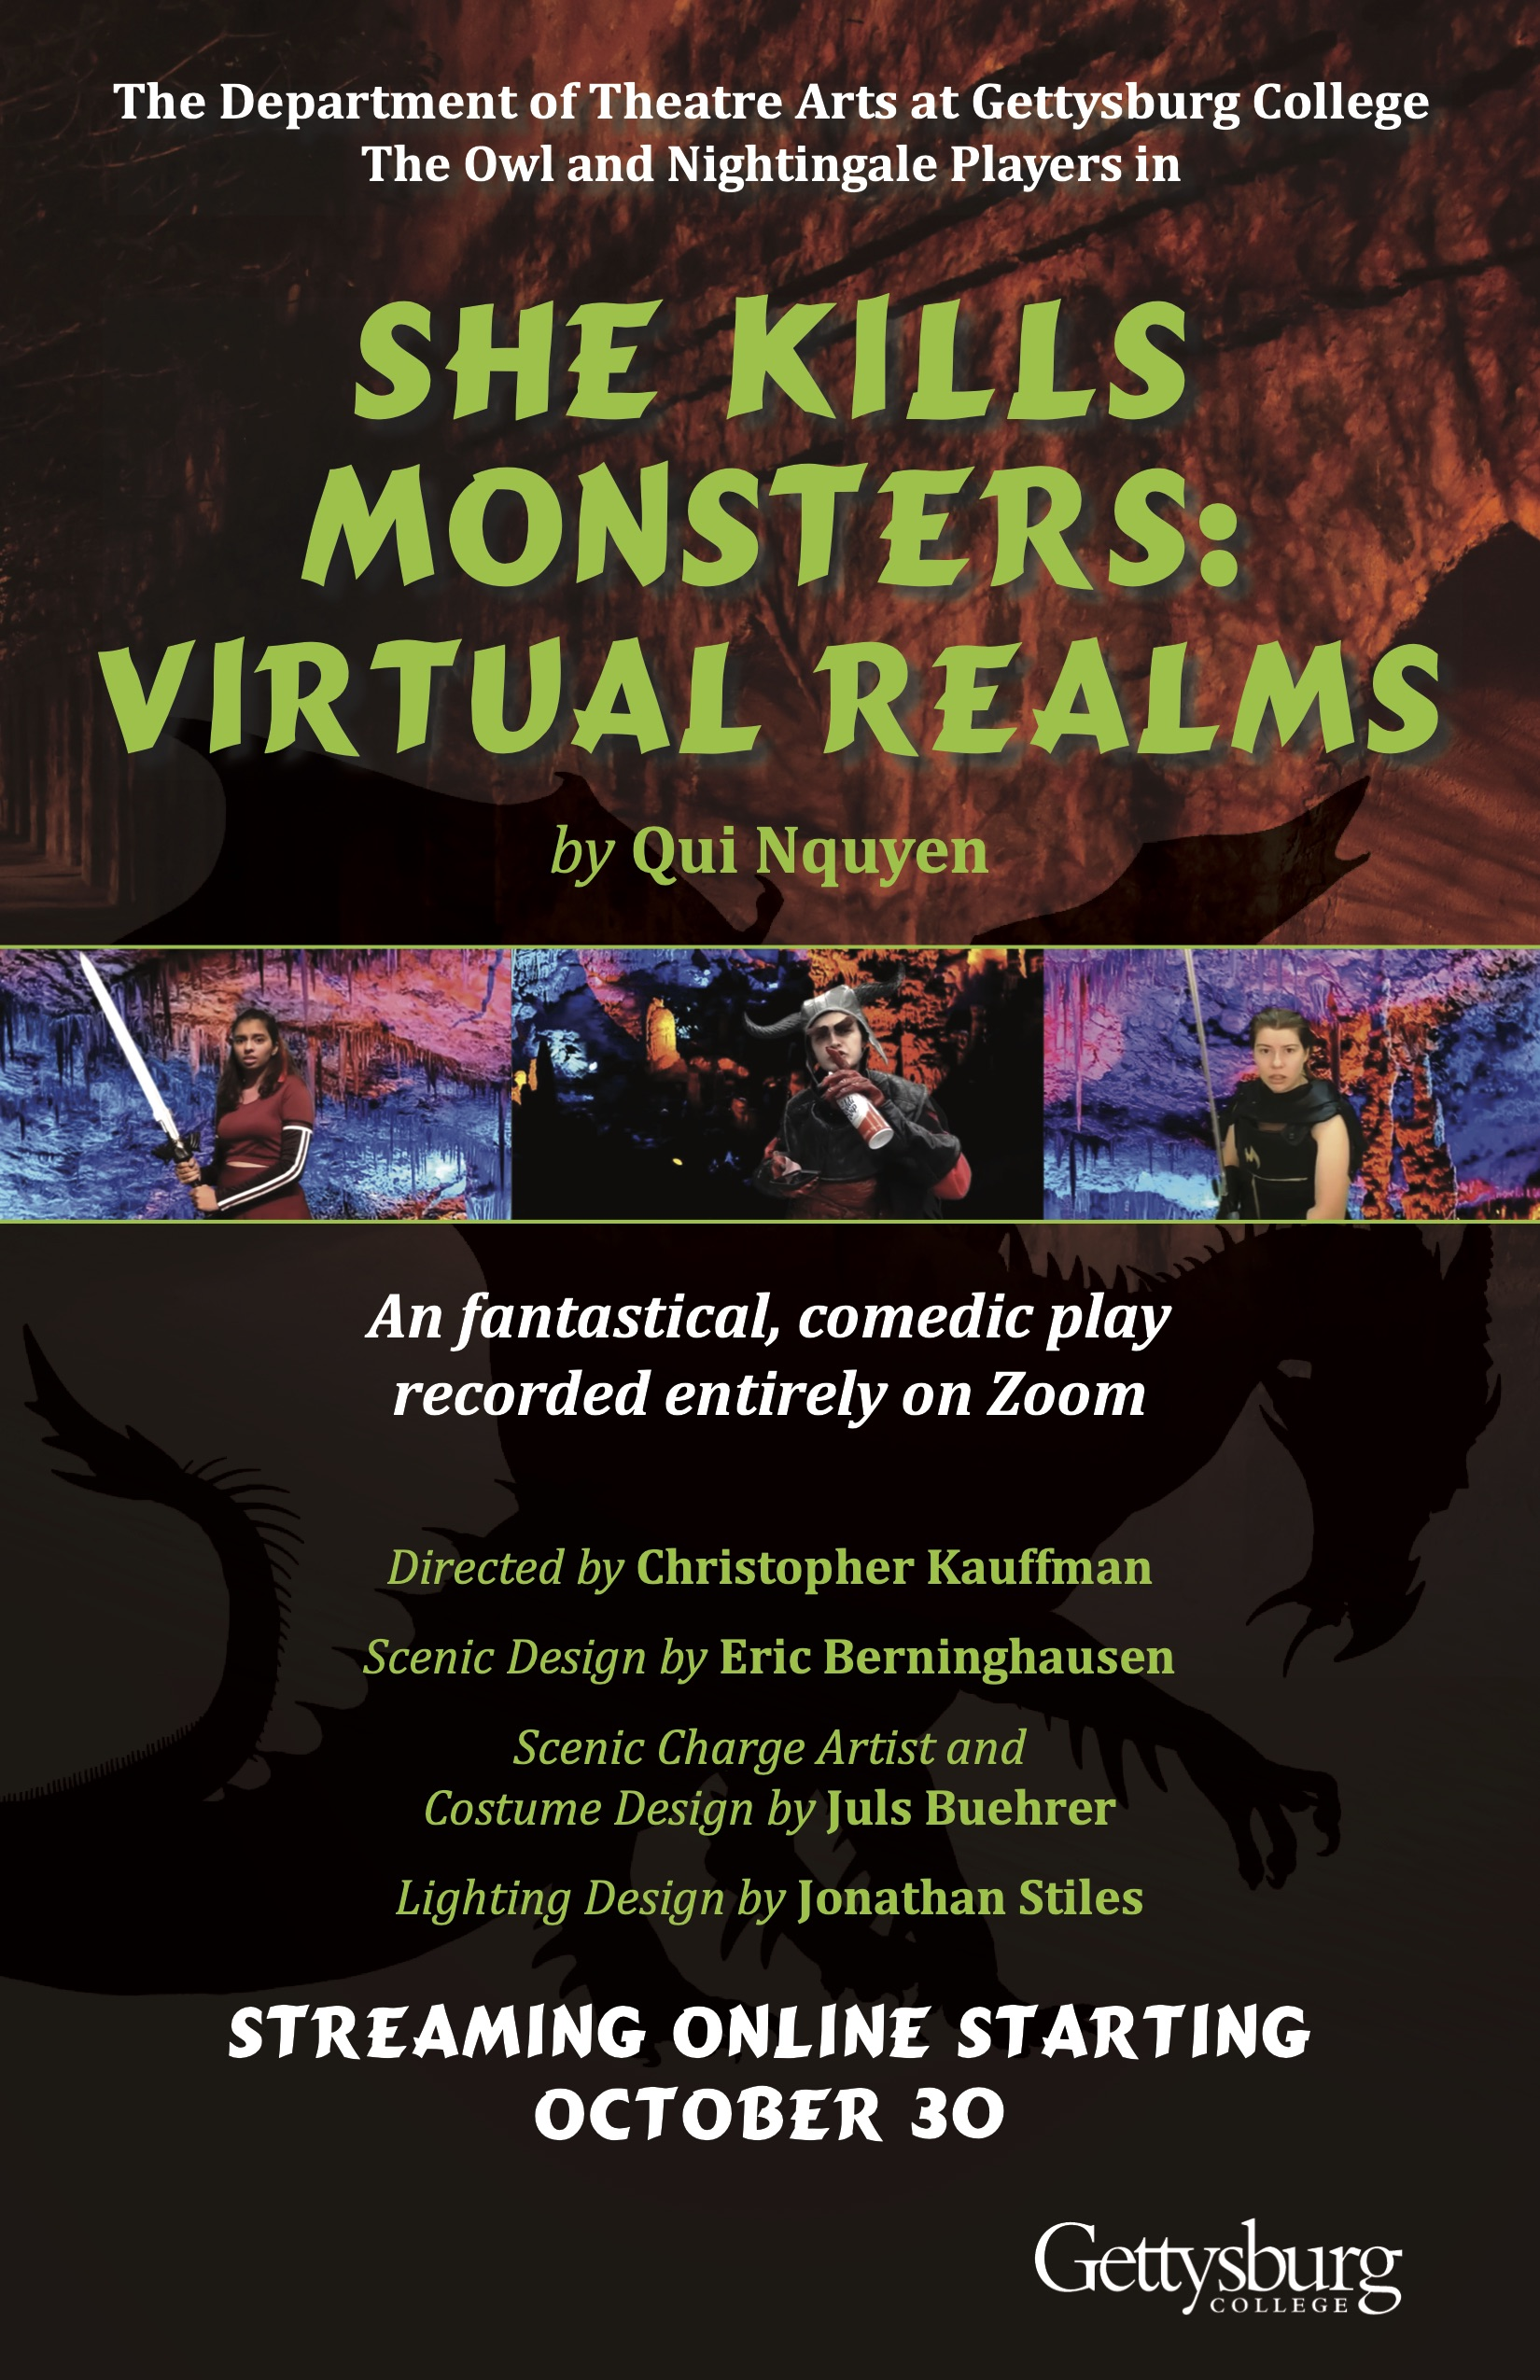 The poster for Gettysburg's virtual production of She Kills Monsters: Virtual Realms